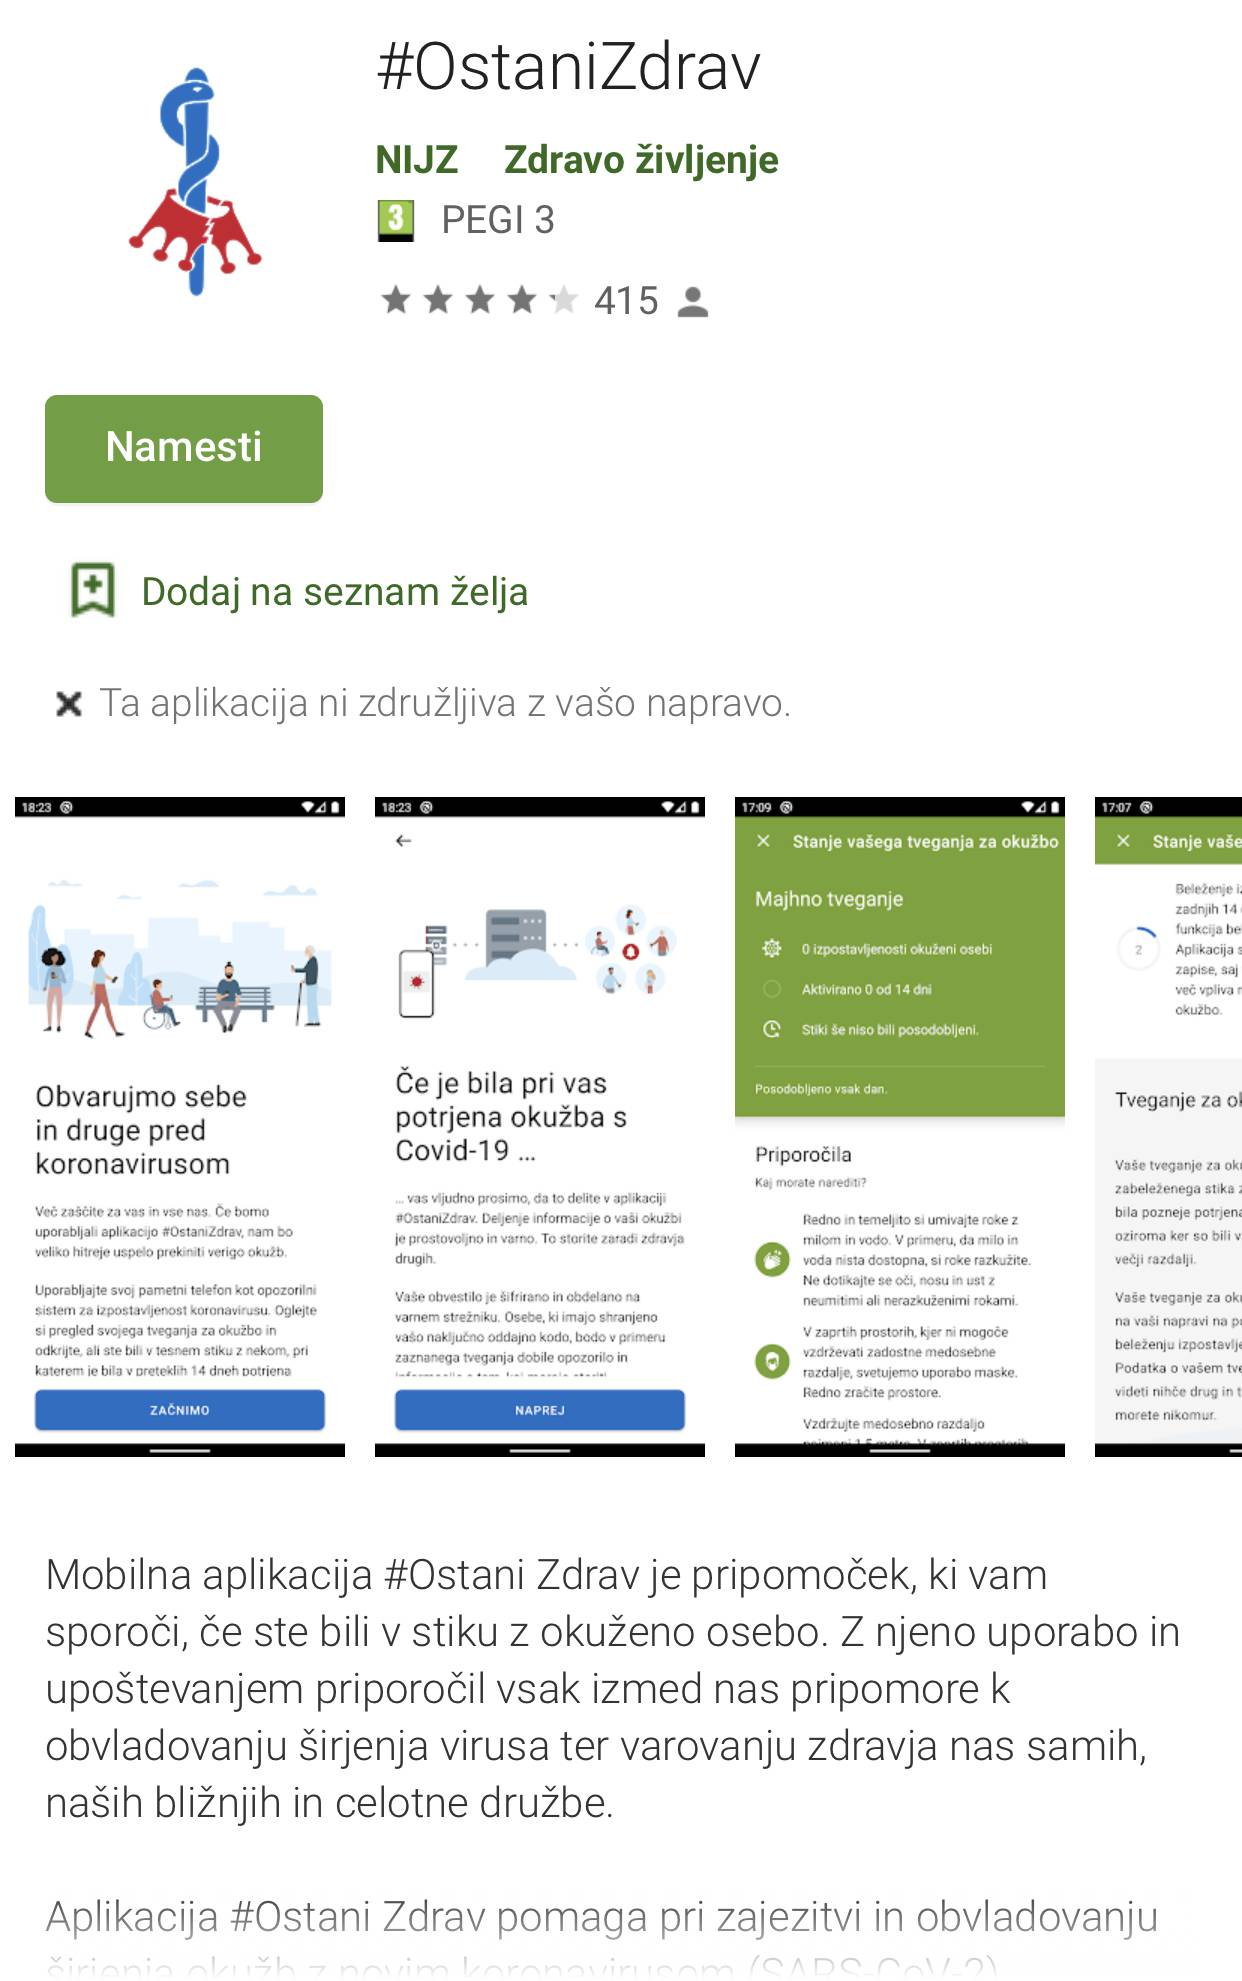 #OstaniZdrav Covid19 mobile application in Google Play, August 2020.